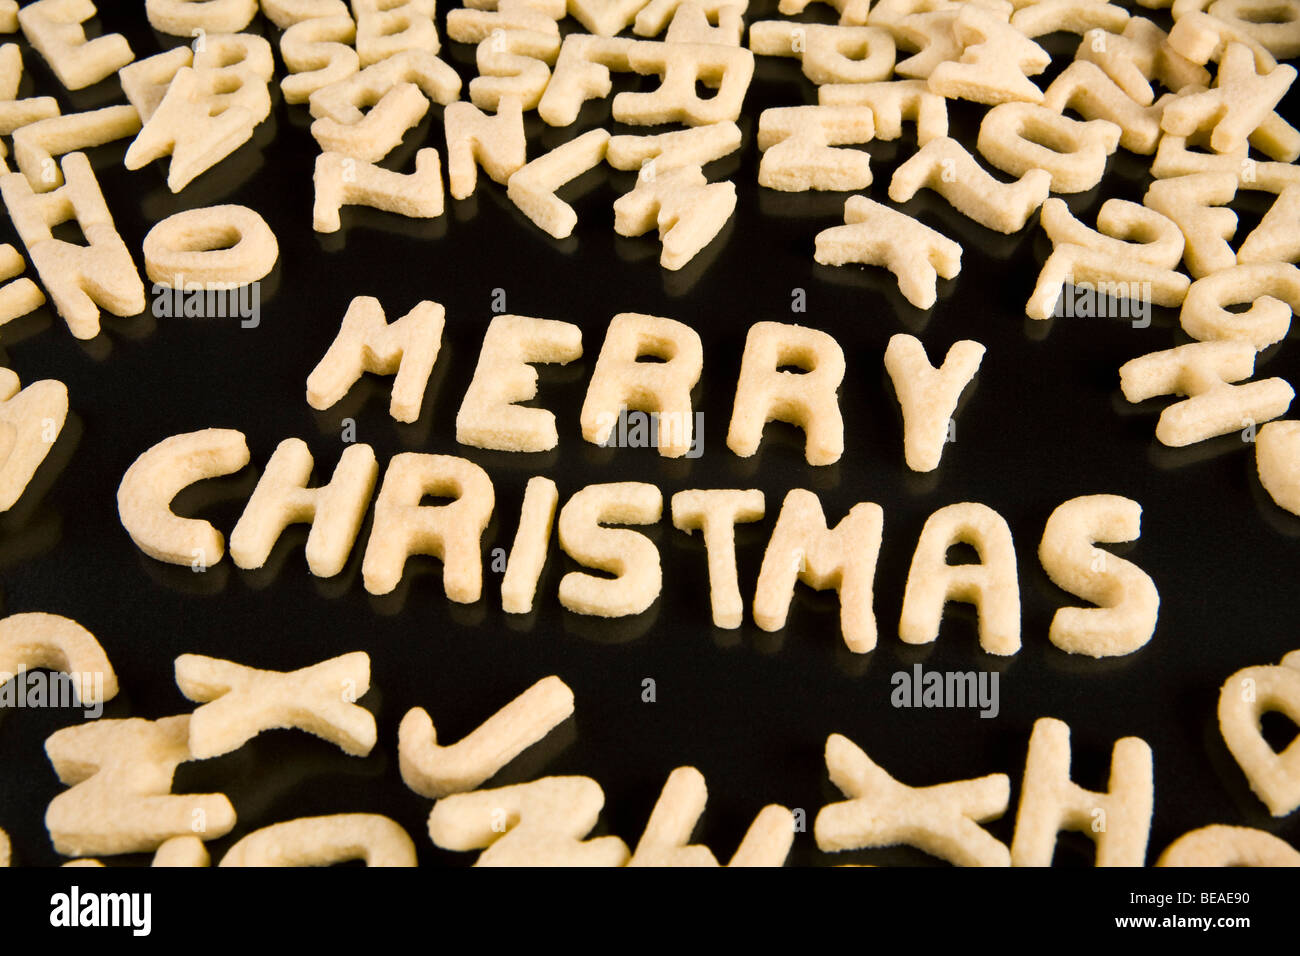 Letter cookies spelling out the phrase Merry Christmas - Stock Image